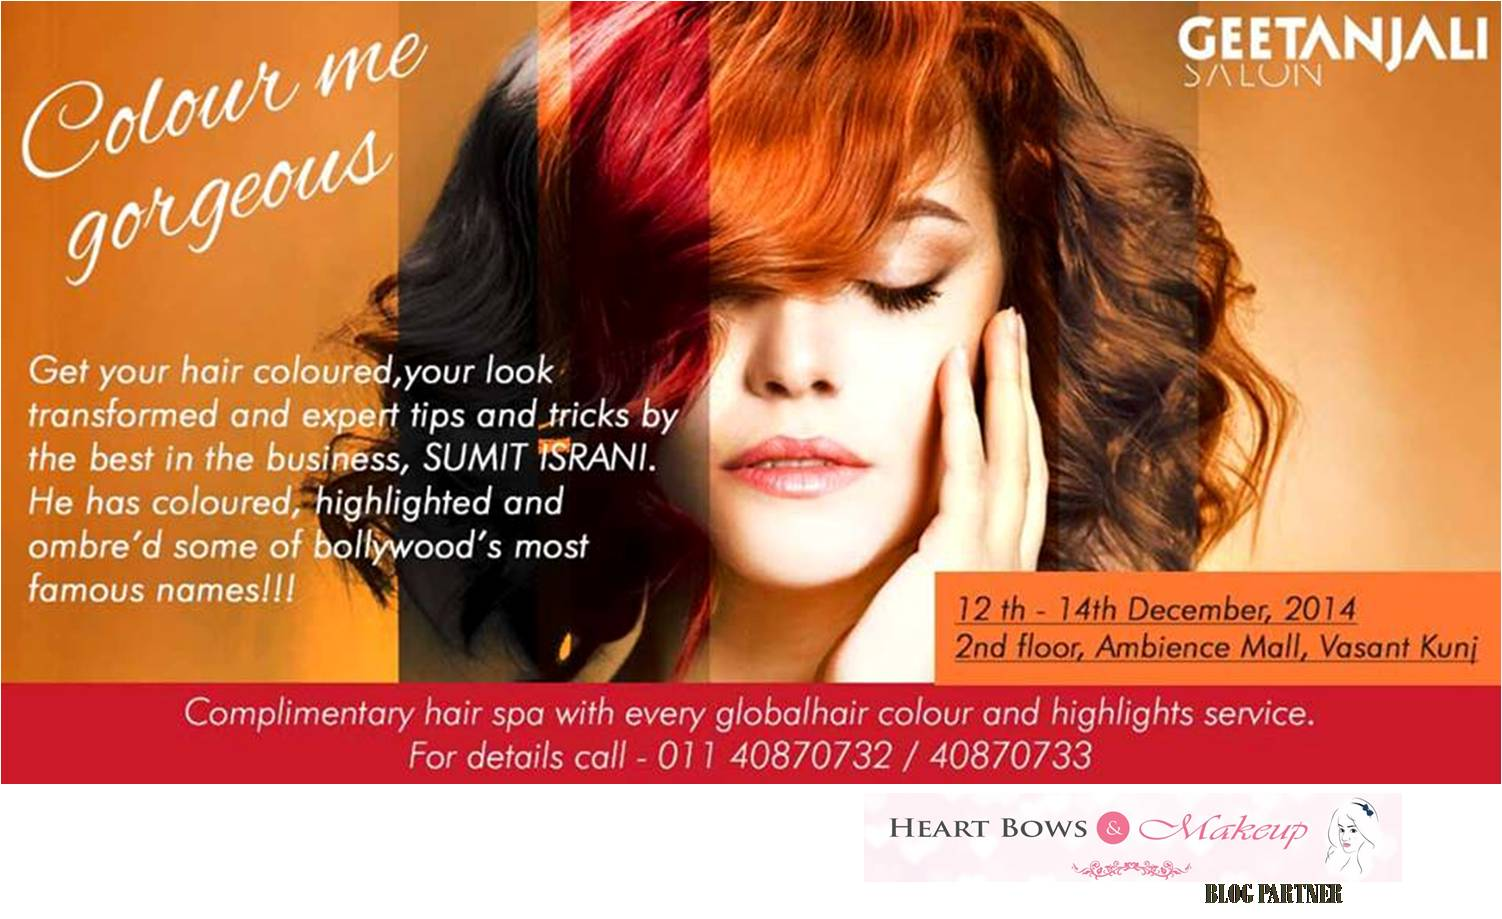 Hair Coloring At Geetanjai Salon, Delhi